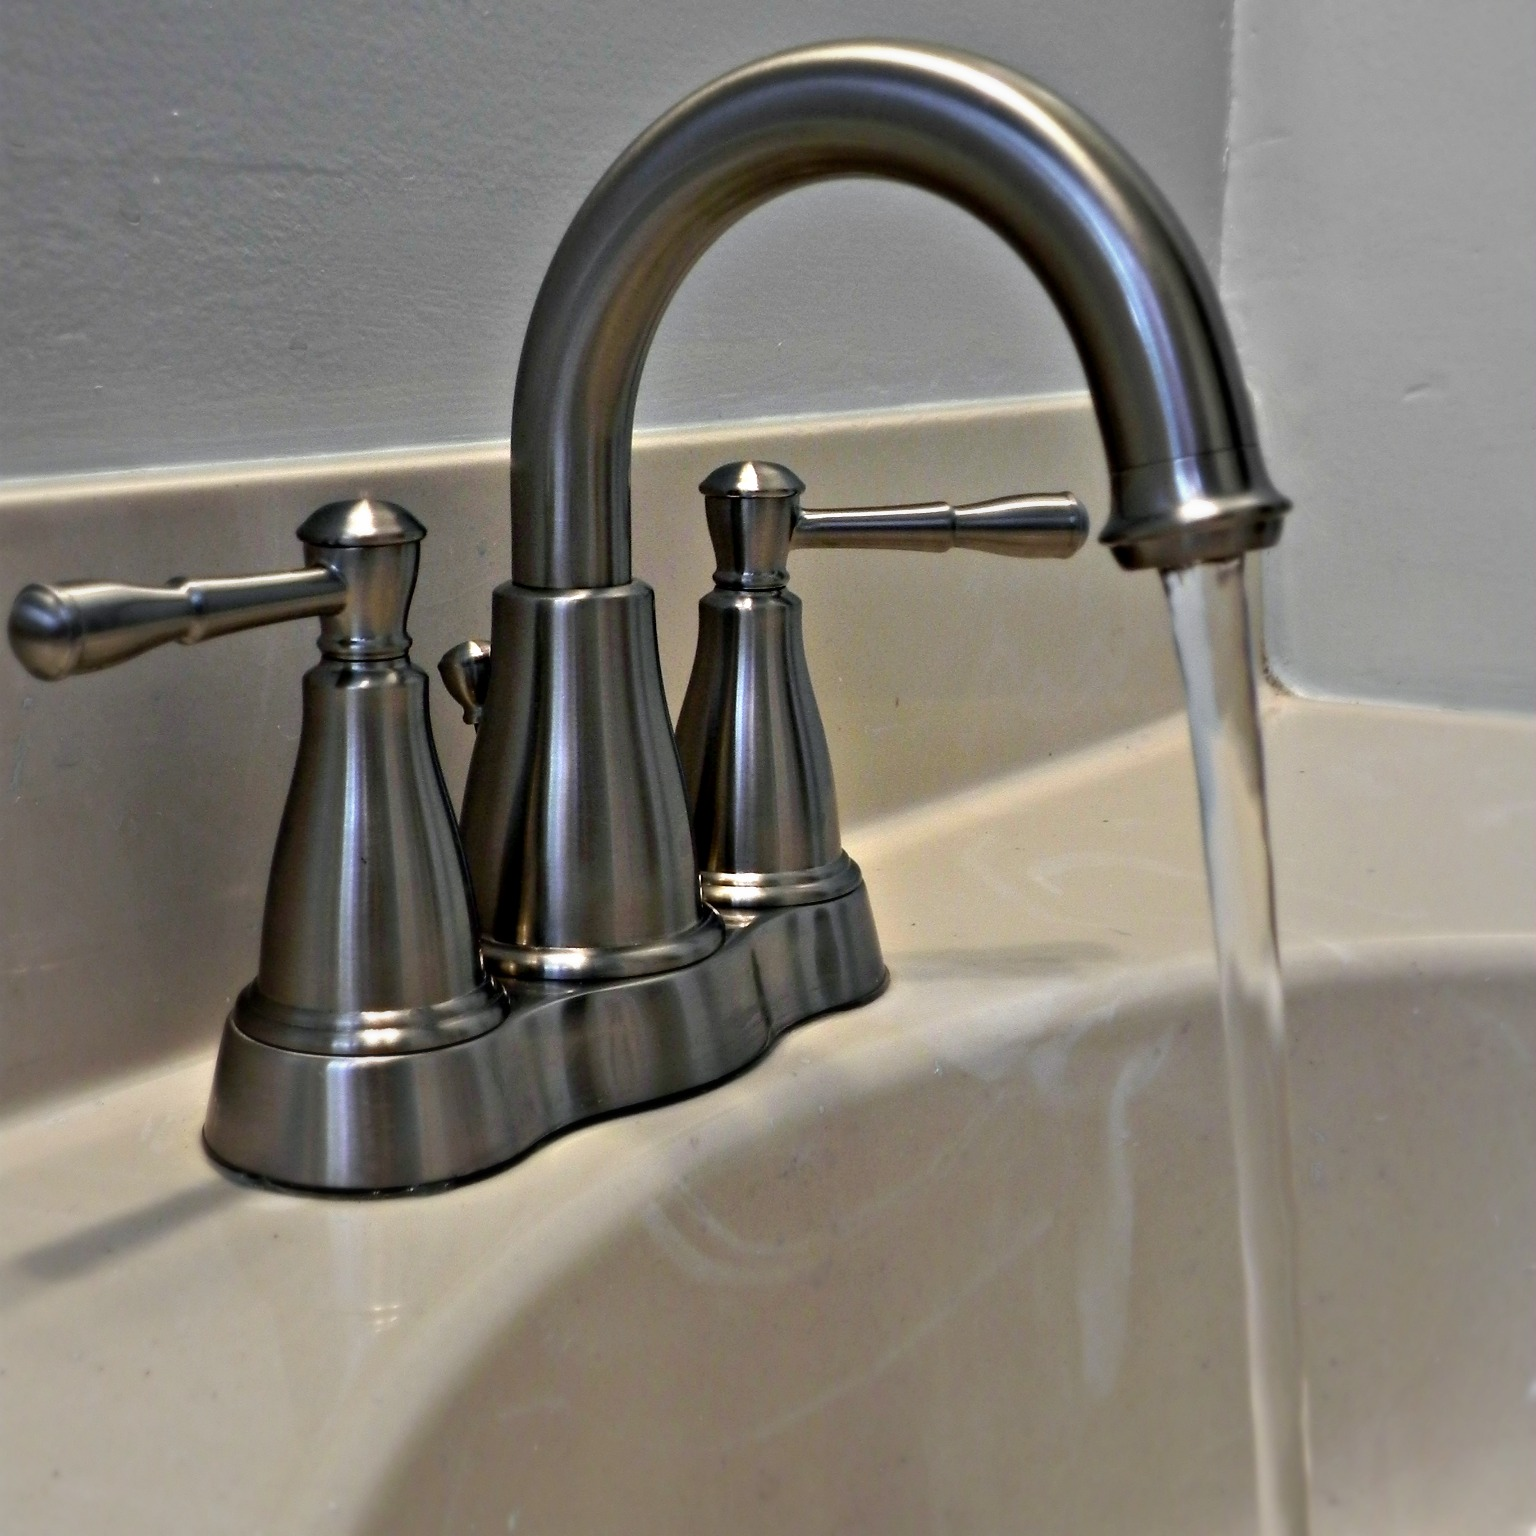 Toilet Faucet : Danze Eastham Bathroom Faucet Review - Mad in Crafts